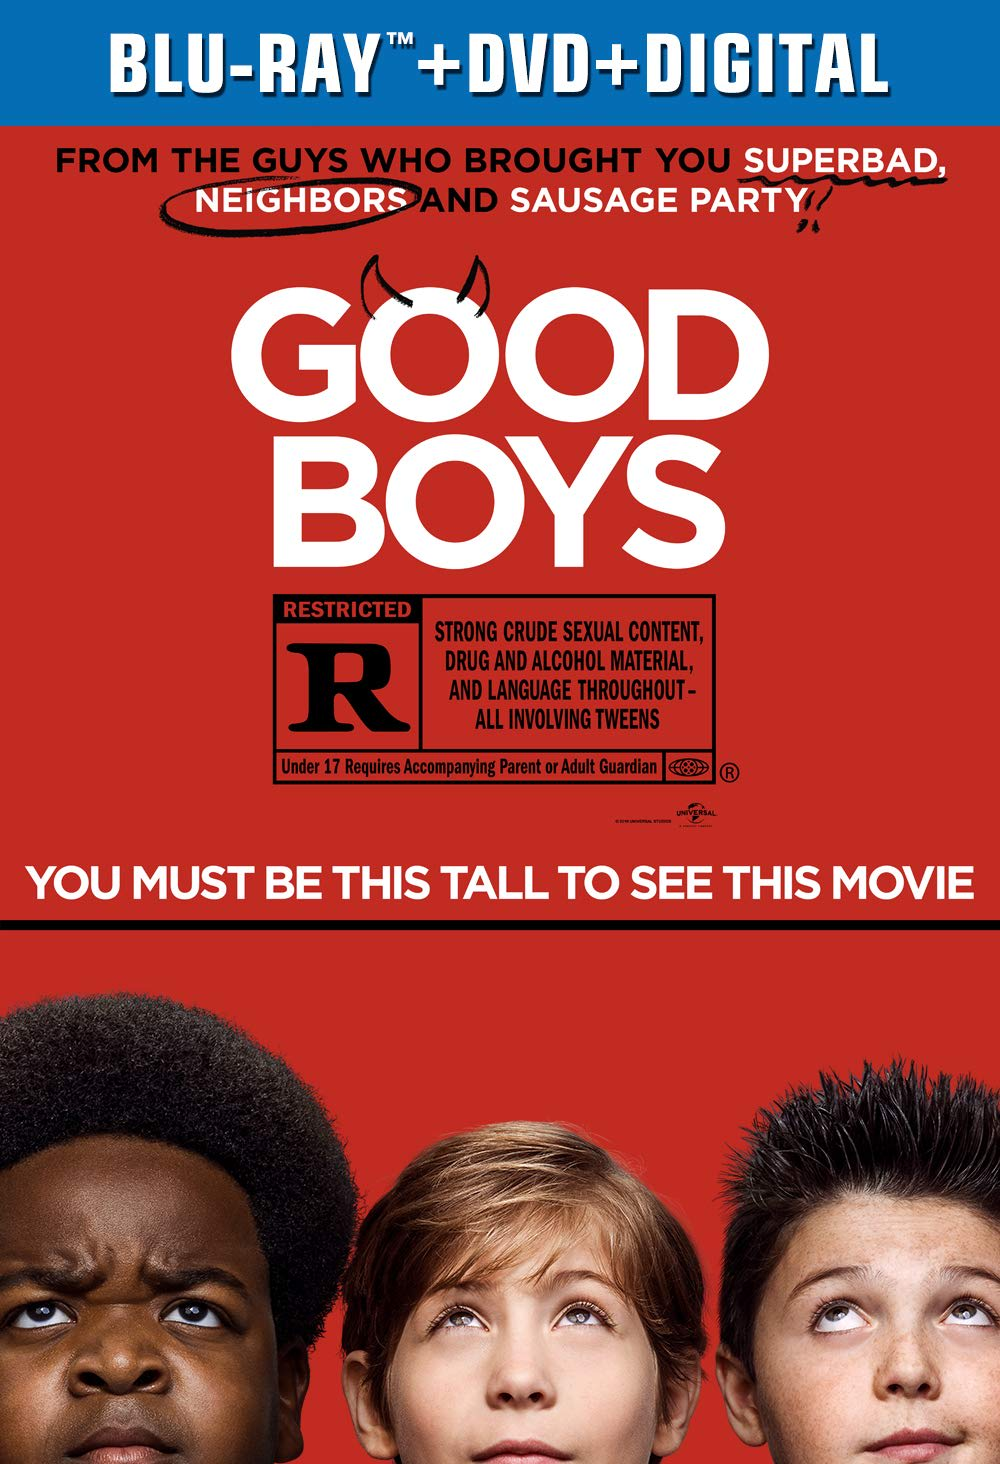 Good Boys (DVD + Digital) [Blu-ray]